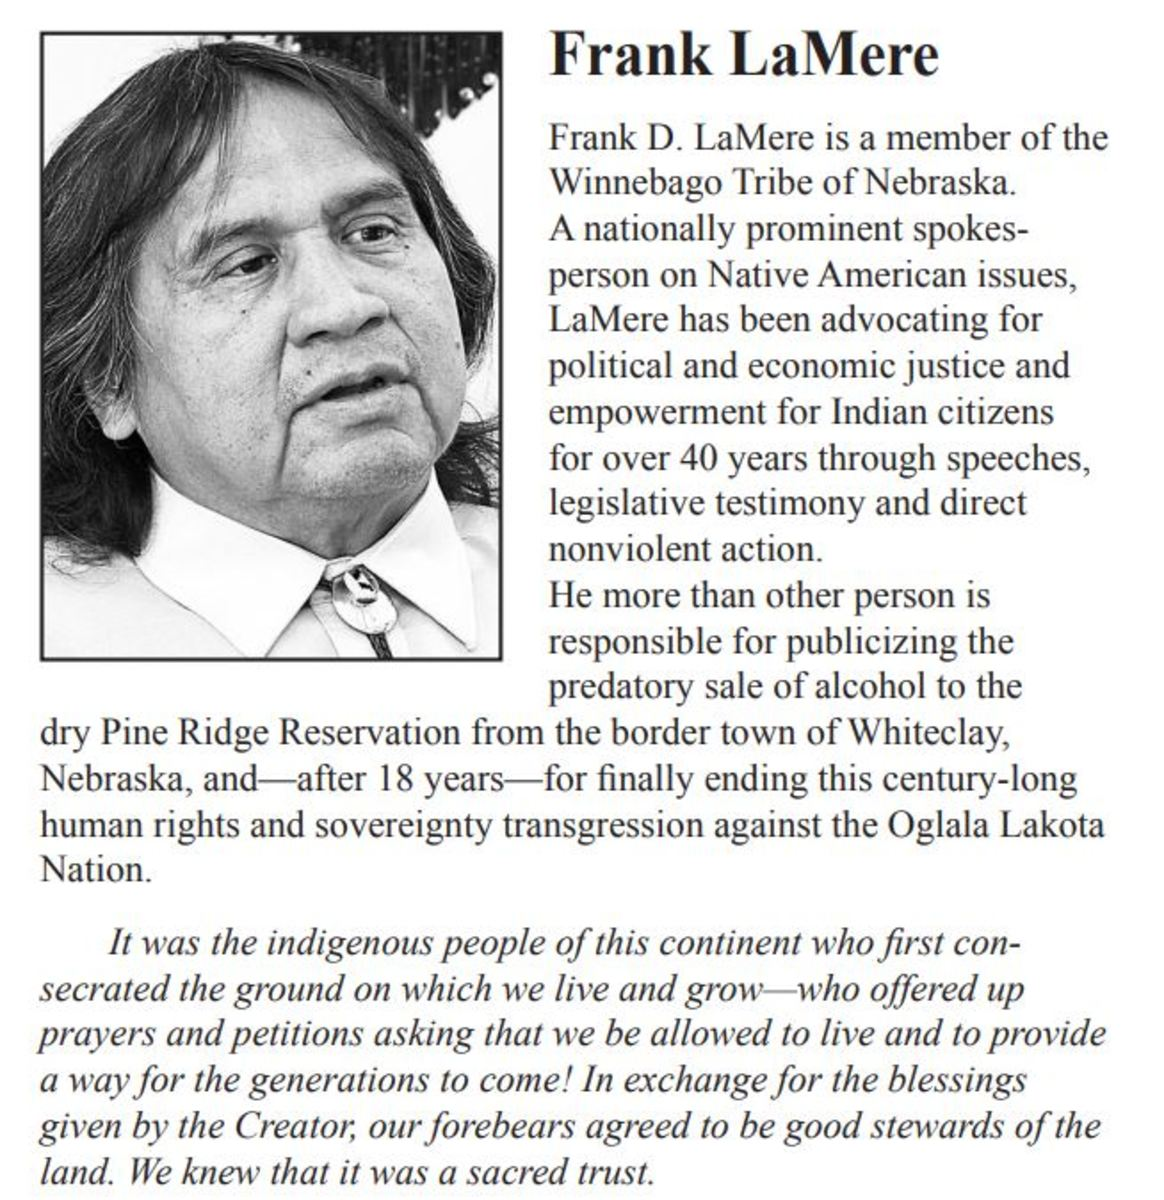 """Frank LaMere - Statement on Fossil Fuels from the 'Briefing Warren Buffet"""" statement by the Nebraskans for Peace state board."""